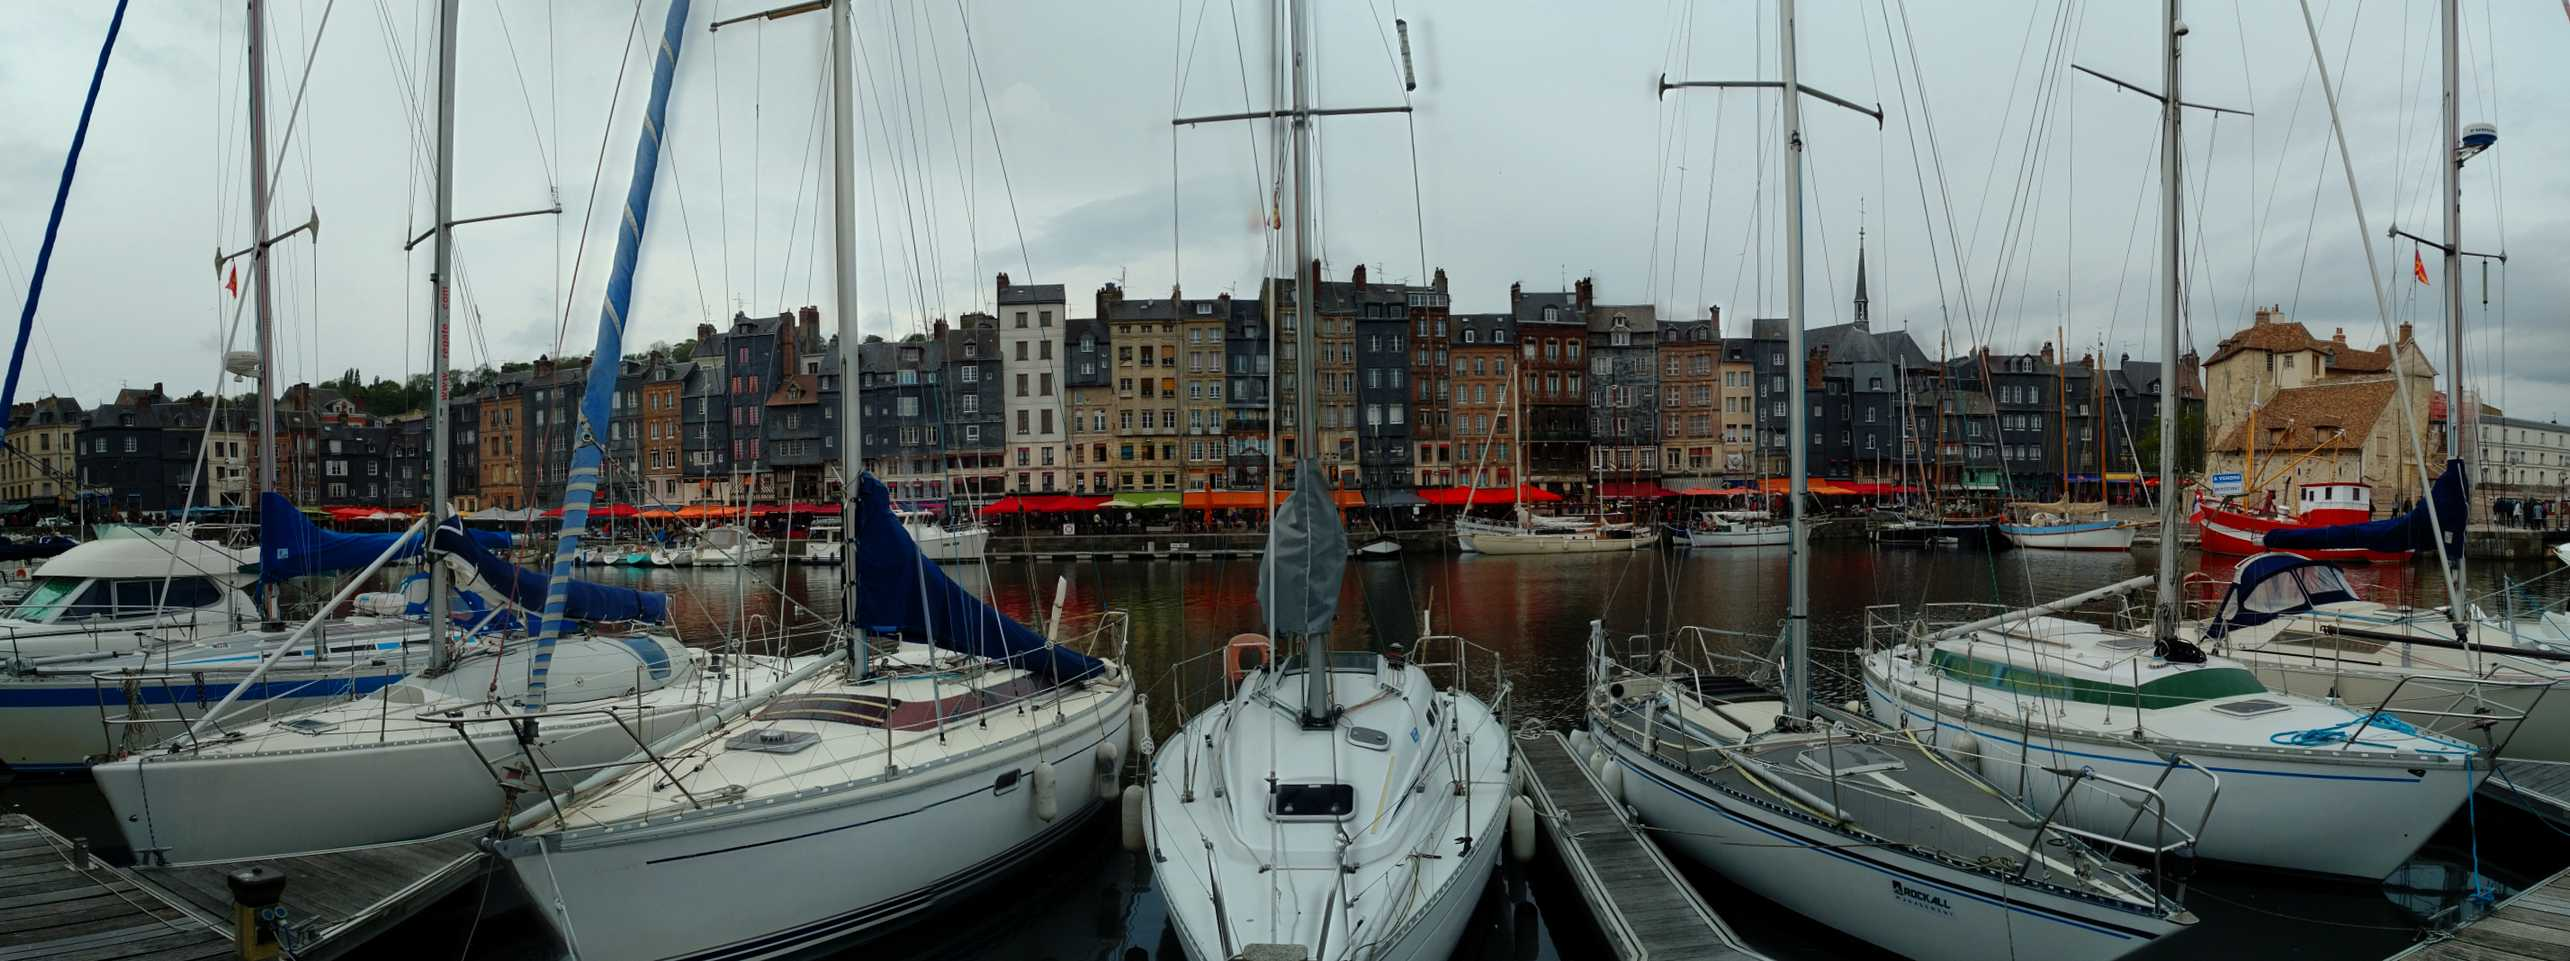 Honfleur harbour panorama